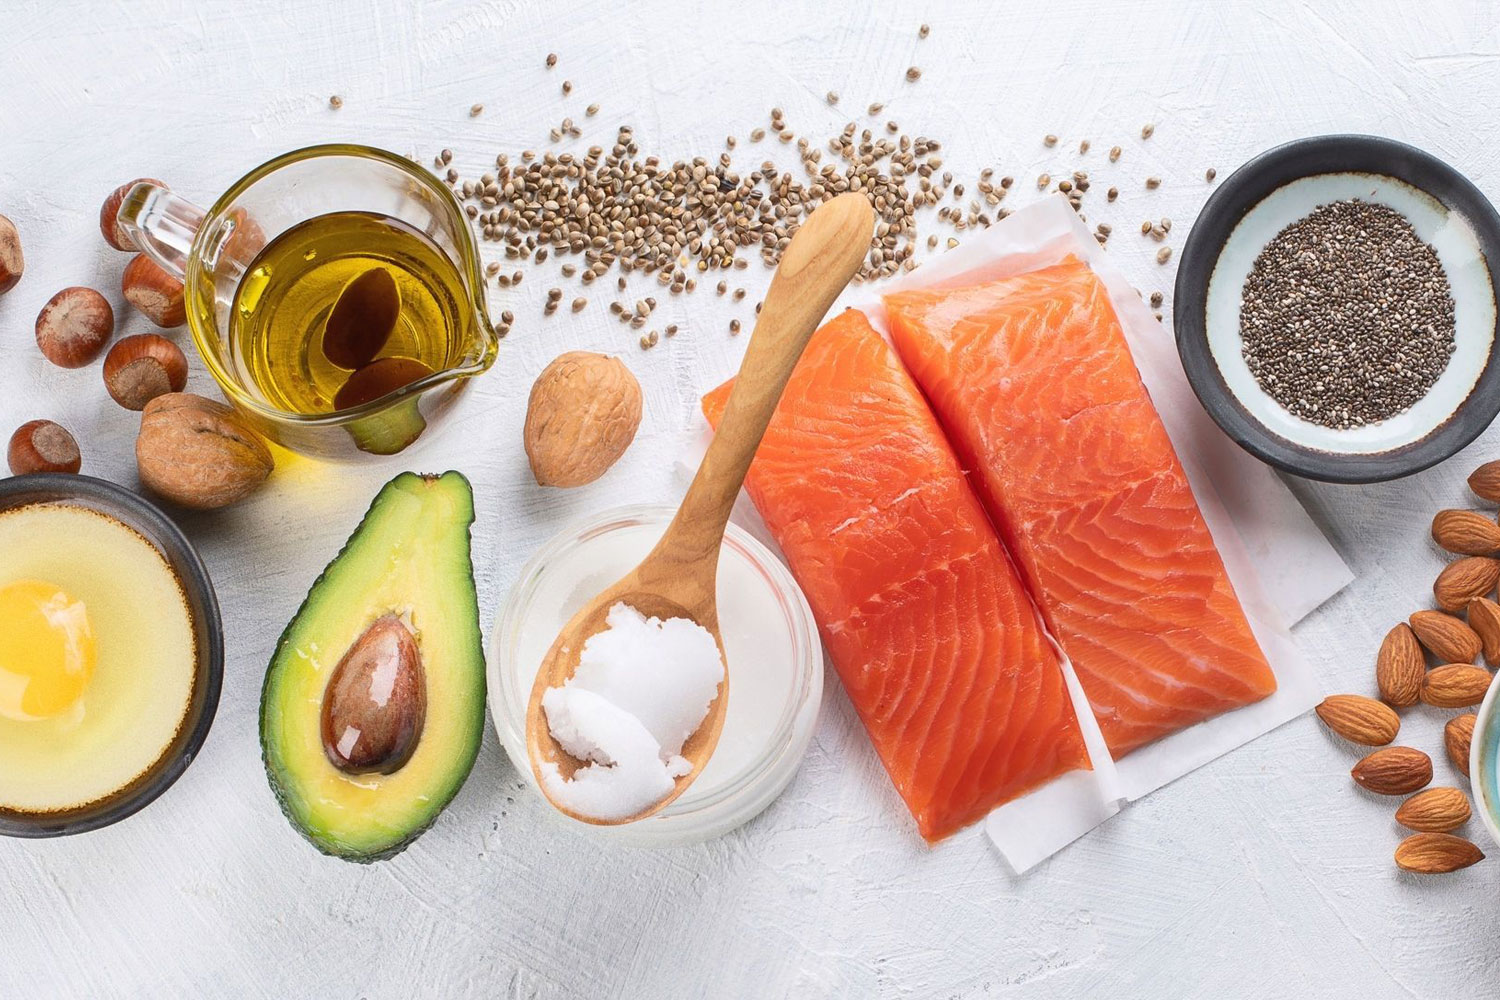 salmon, avocado, egg, nuts, almonds, seeds, and greek yogurt are great foods to boost energy